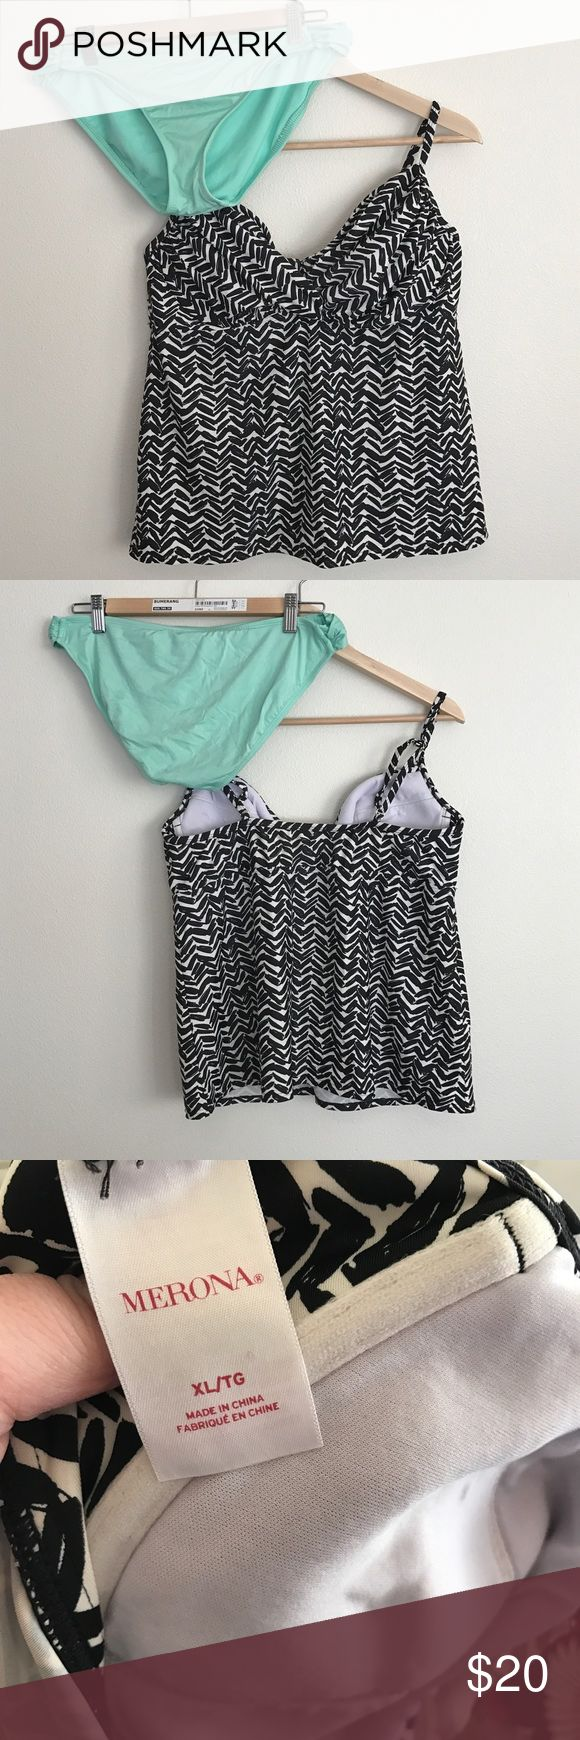 Tankini Set | Aqua, black & white Cute tankini set. Top is merona brand, black and white pattern, great condition and size XL. Bottom is mossimo brand, aqua colored and size XL, has some piling but in great condition. Mossimo Supply Co. Swim Bikinis